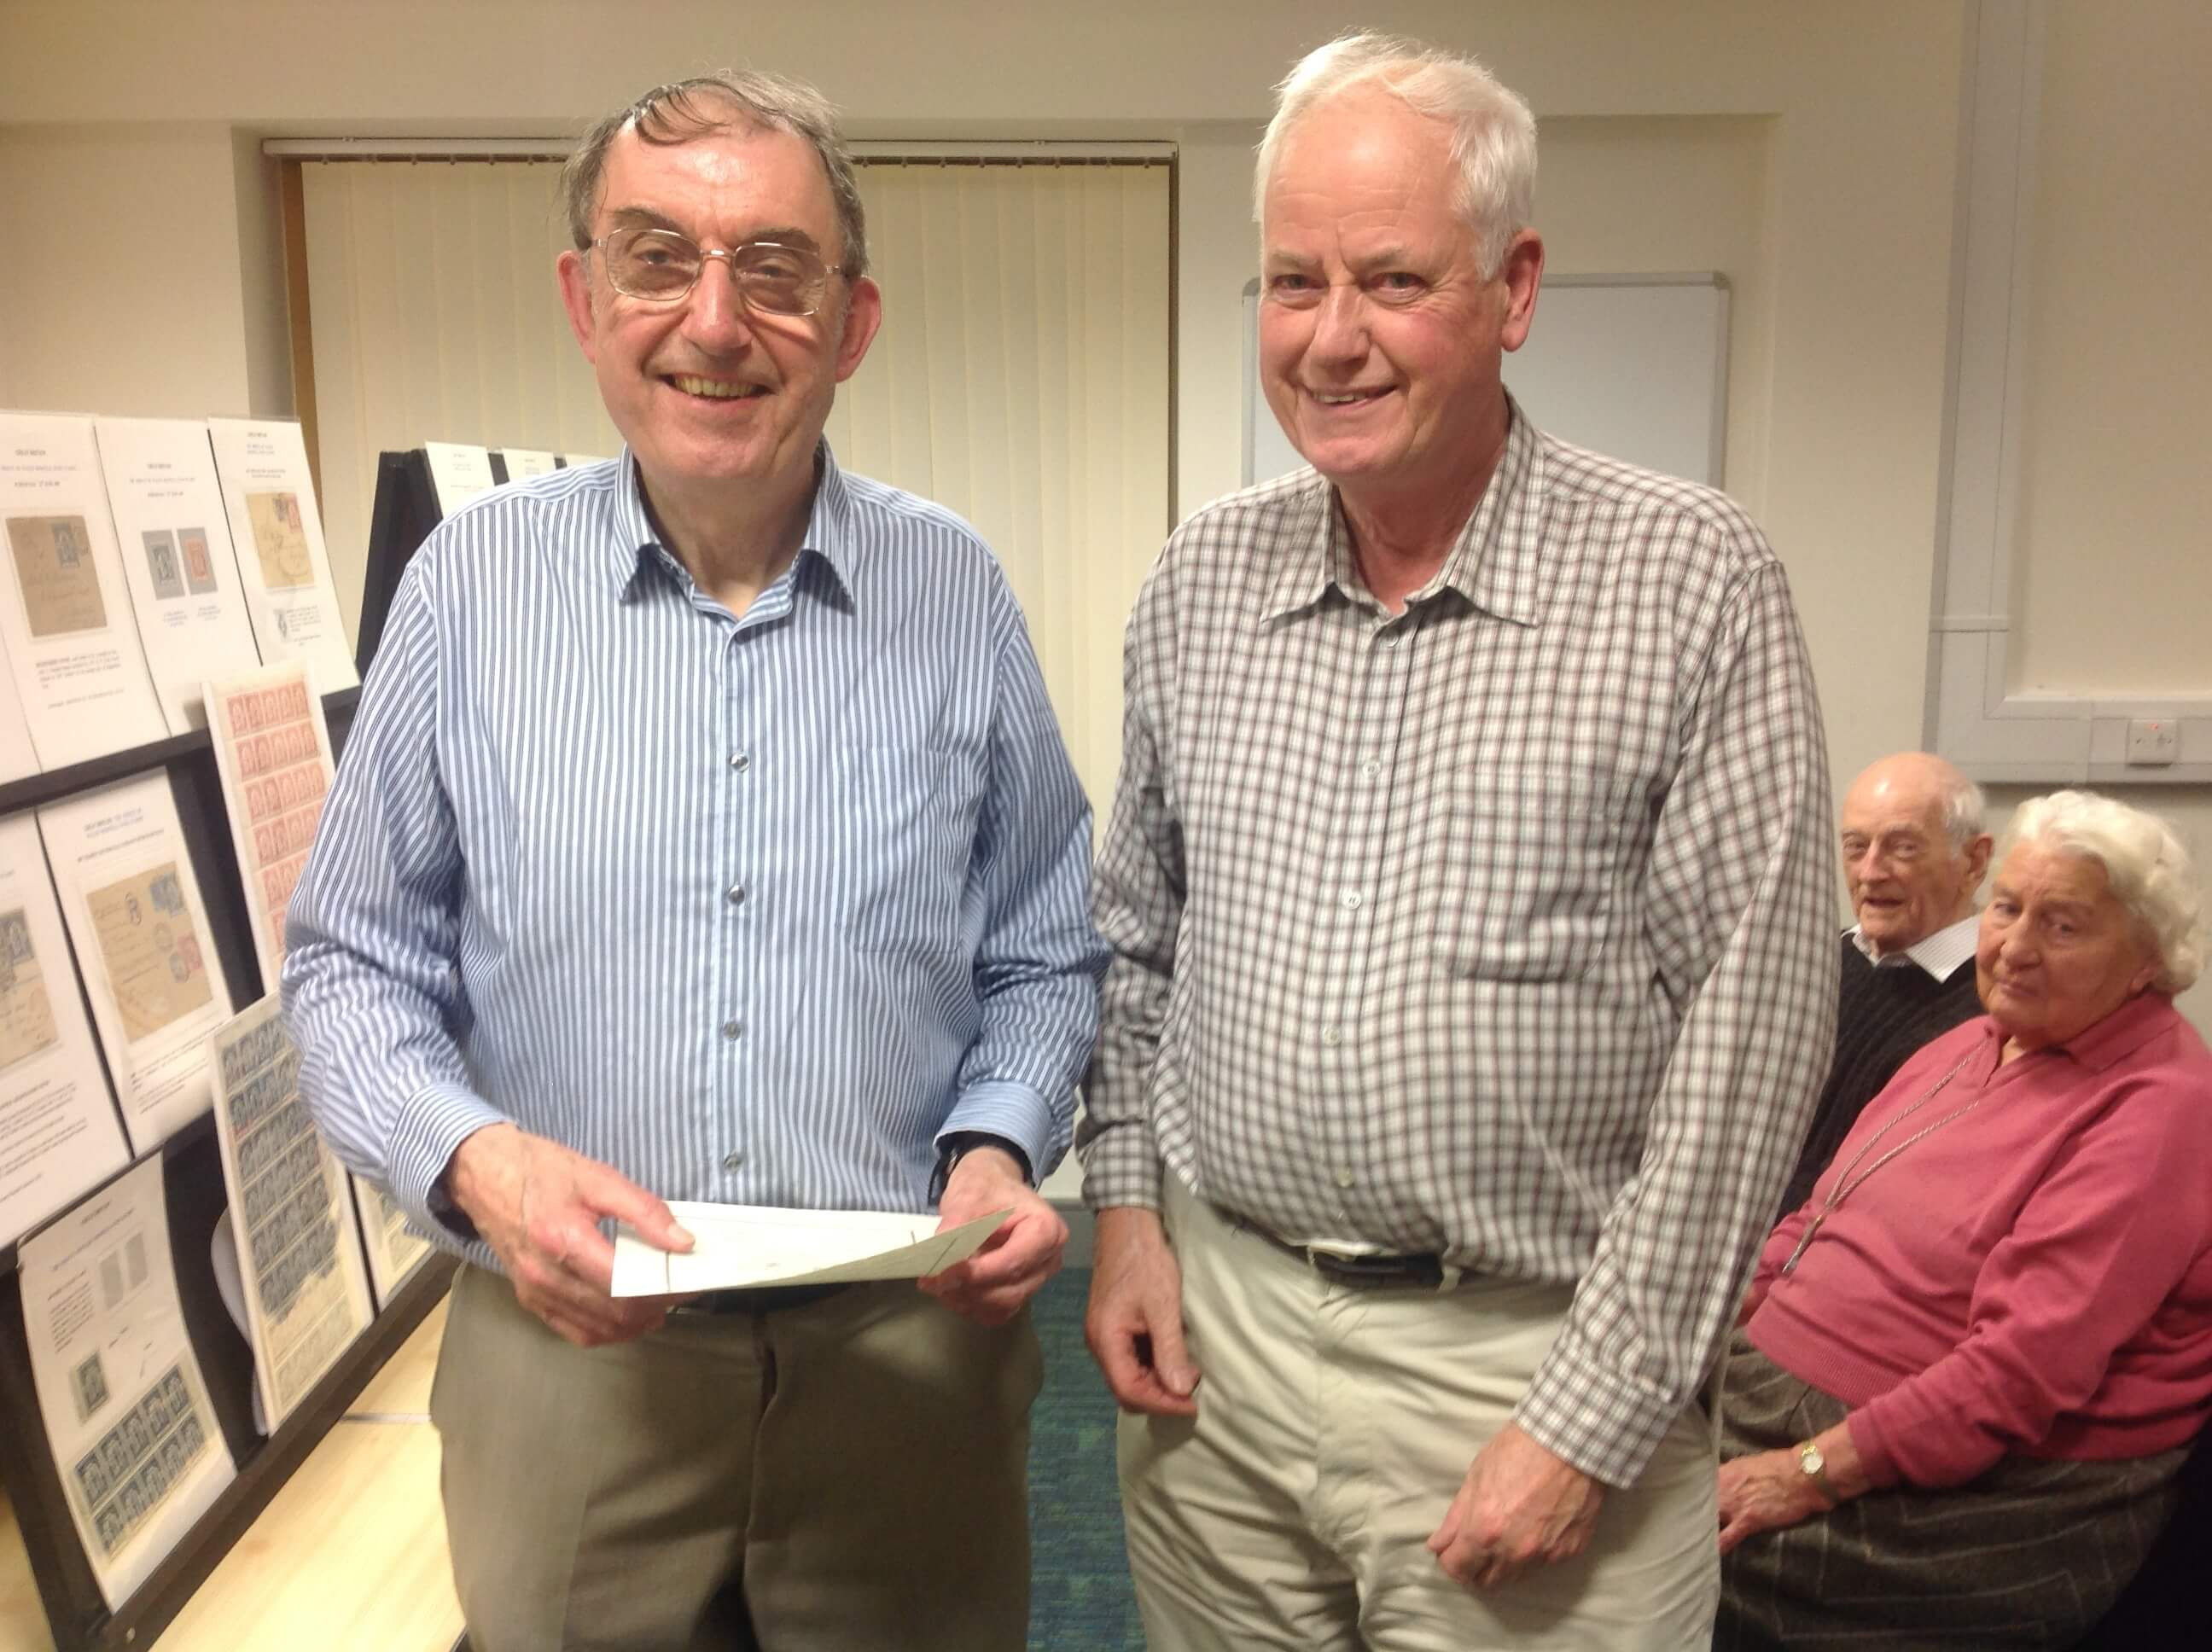 Dr David Sigee being presented with a certificate by Nick Rolfe